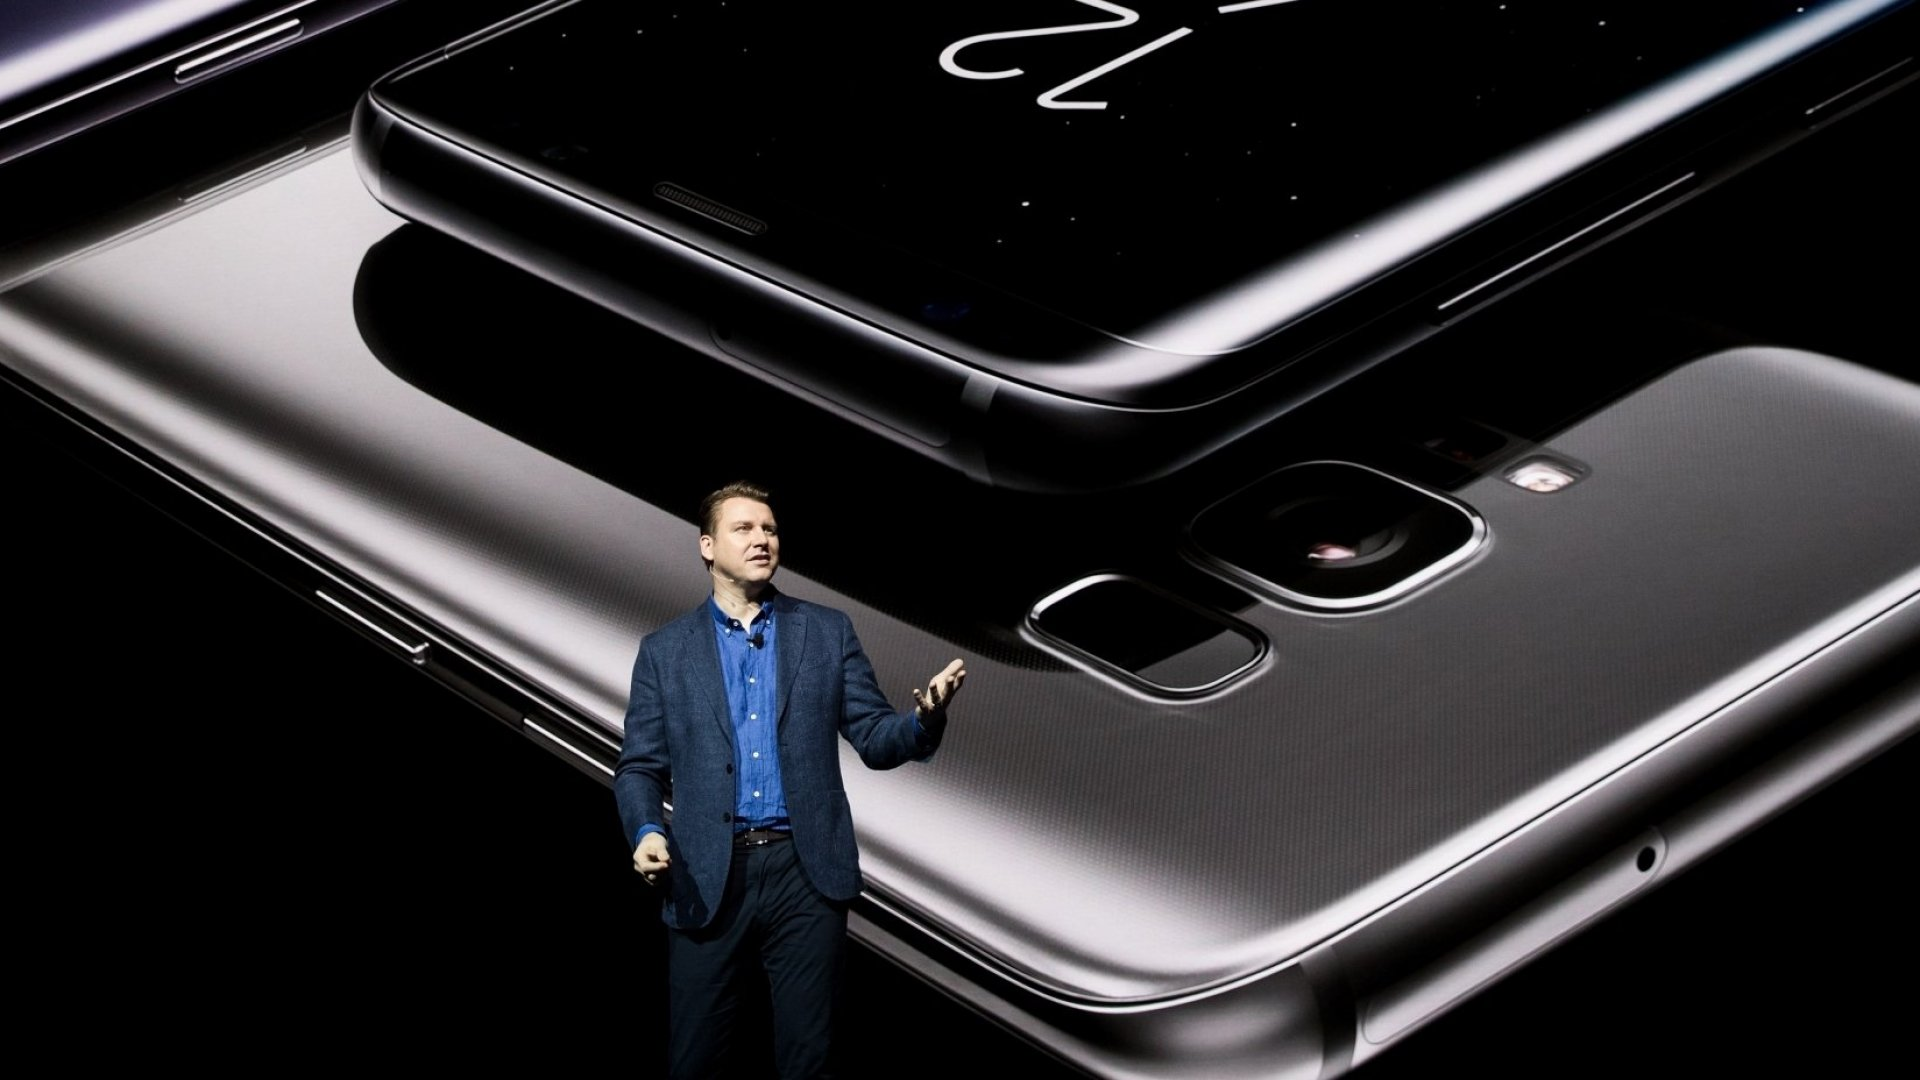 Why Apple Should Be Worried About Samsung